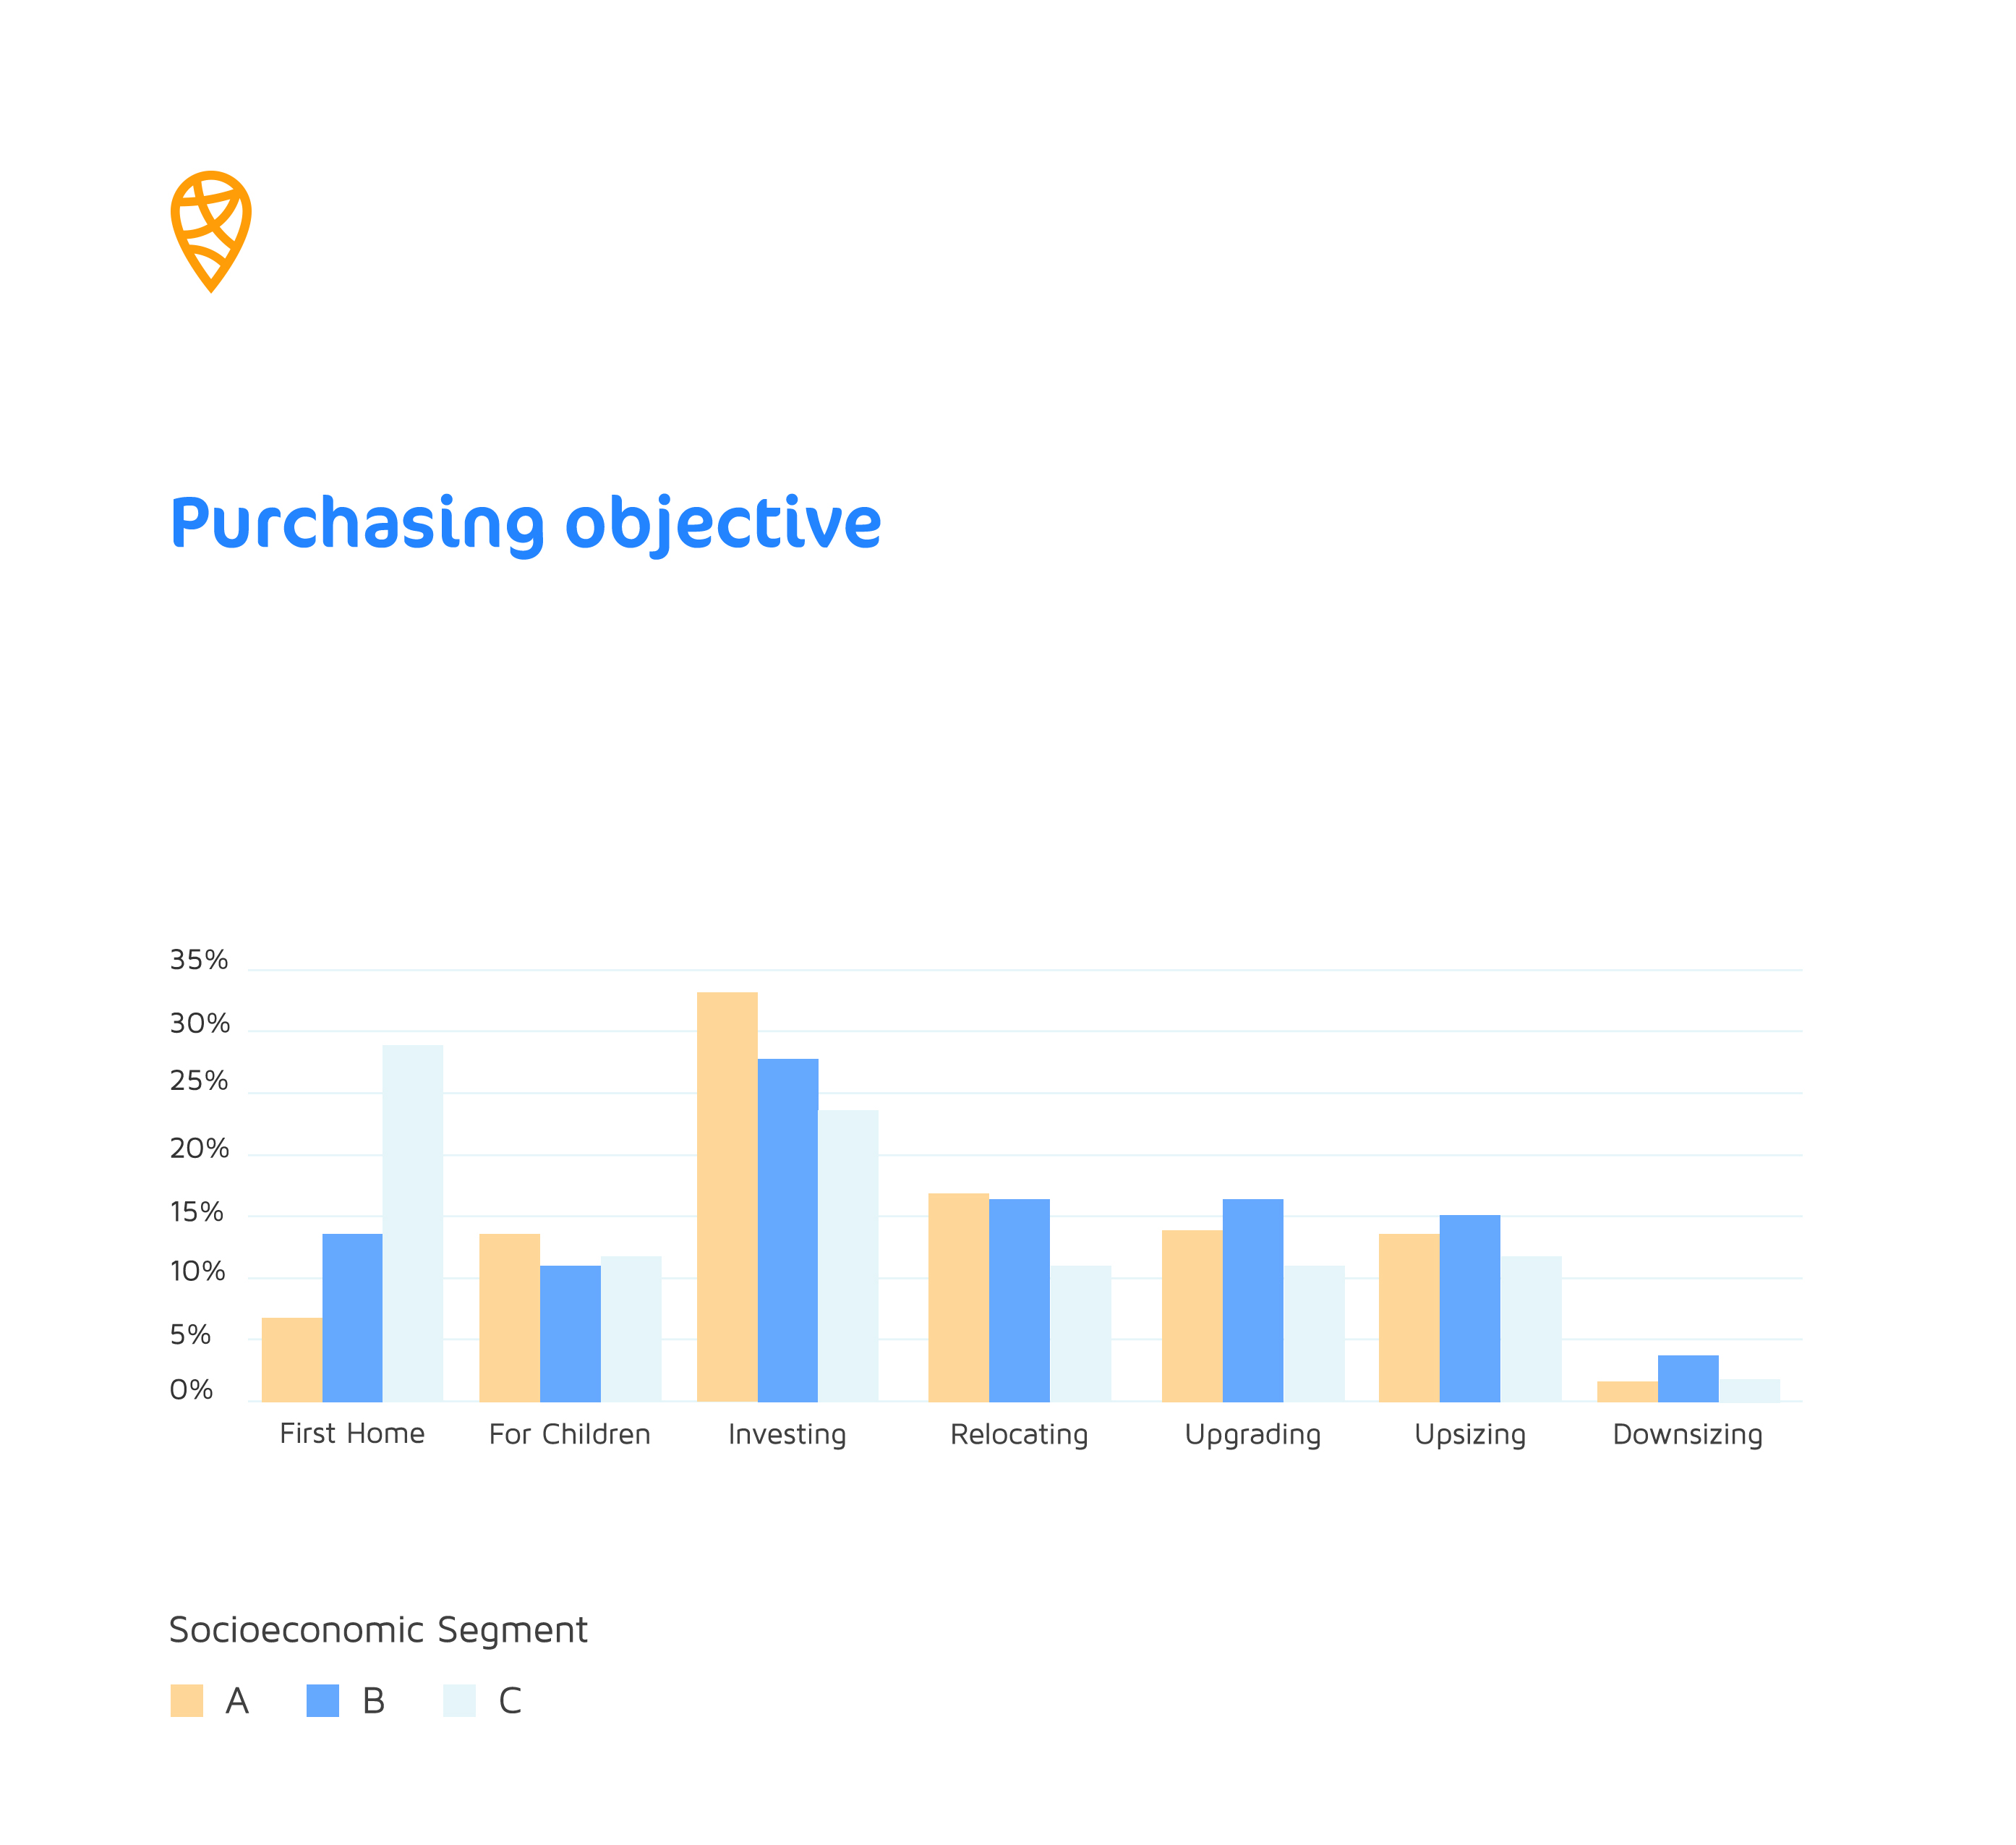 9.Purchasing objective